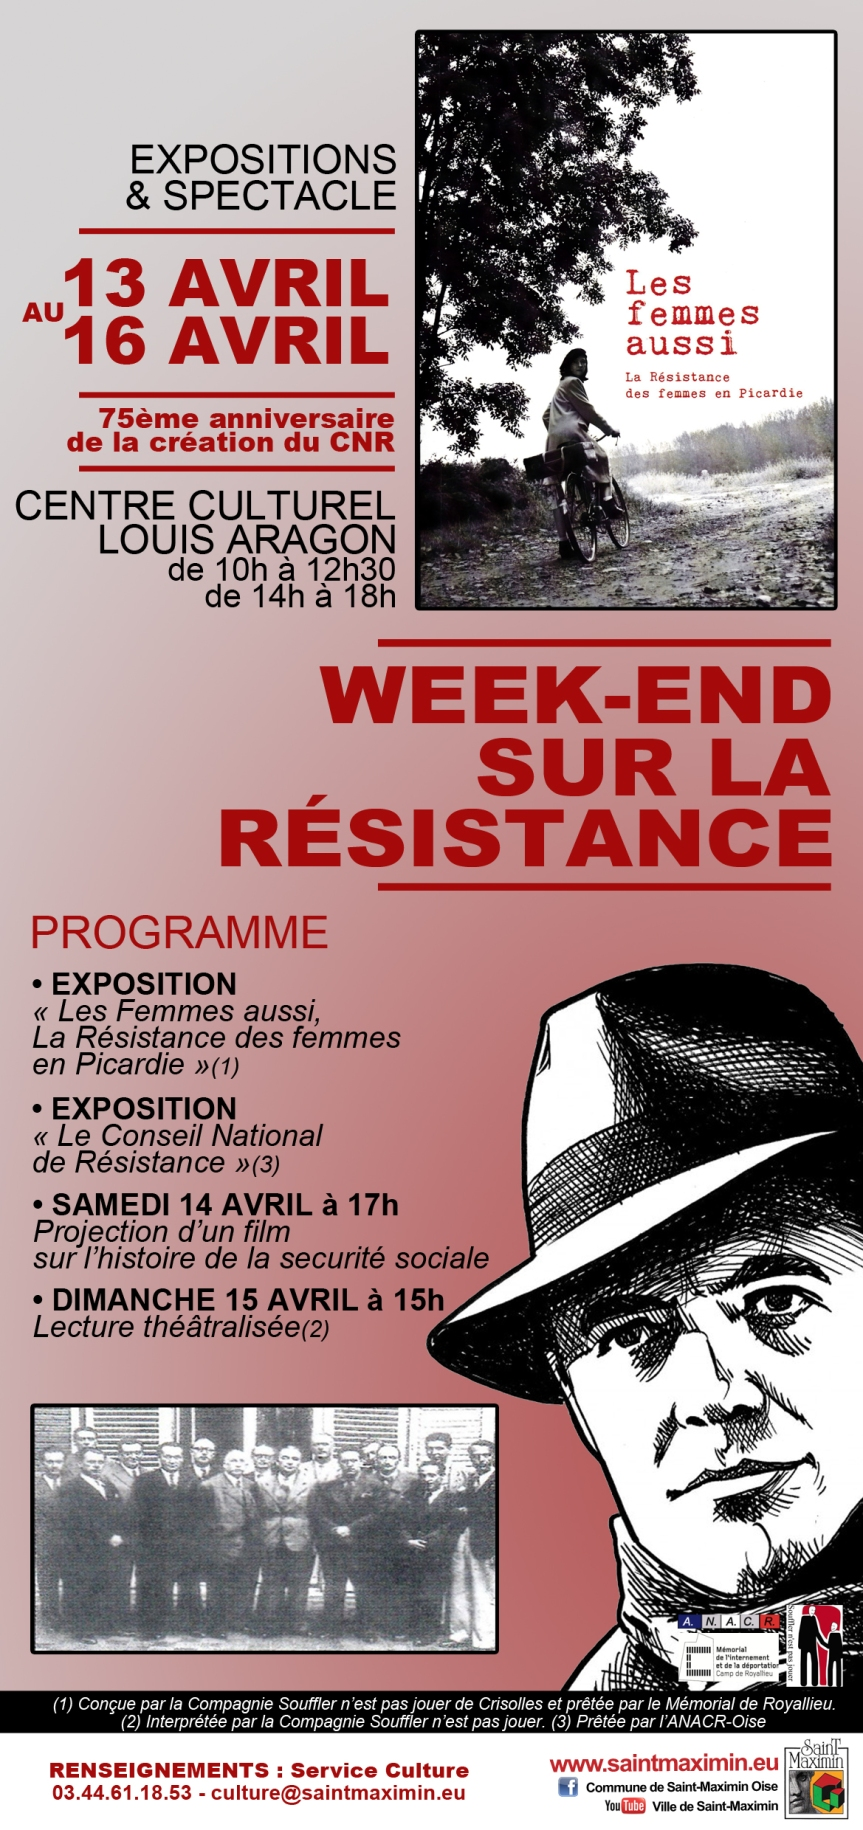 SAINT MAXIMIN Flyer programme WEEK-END Résistance last version.jpg